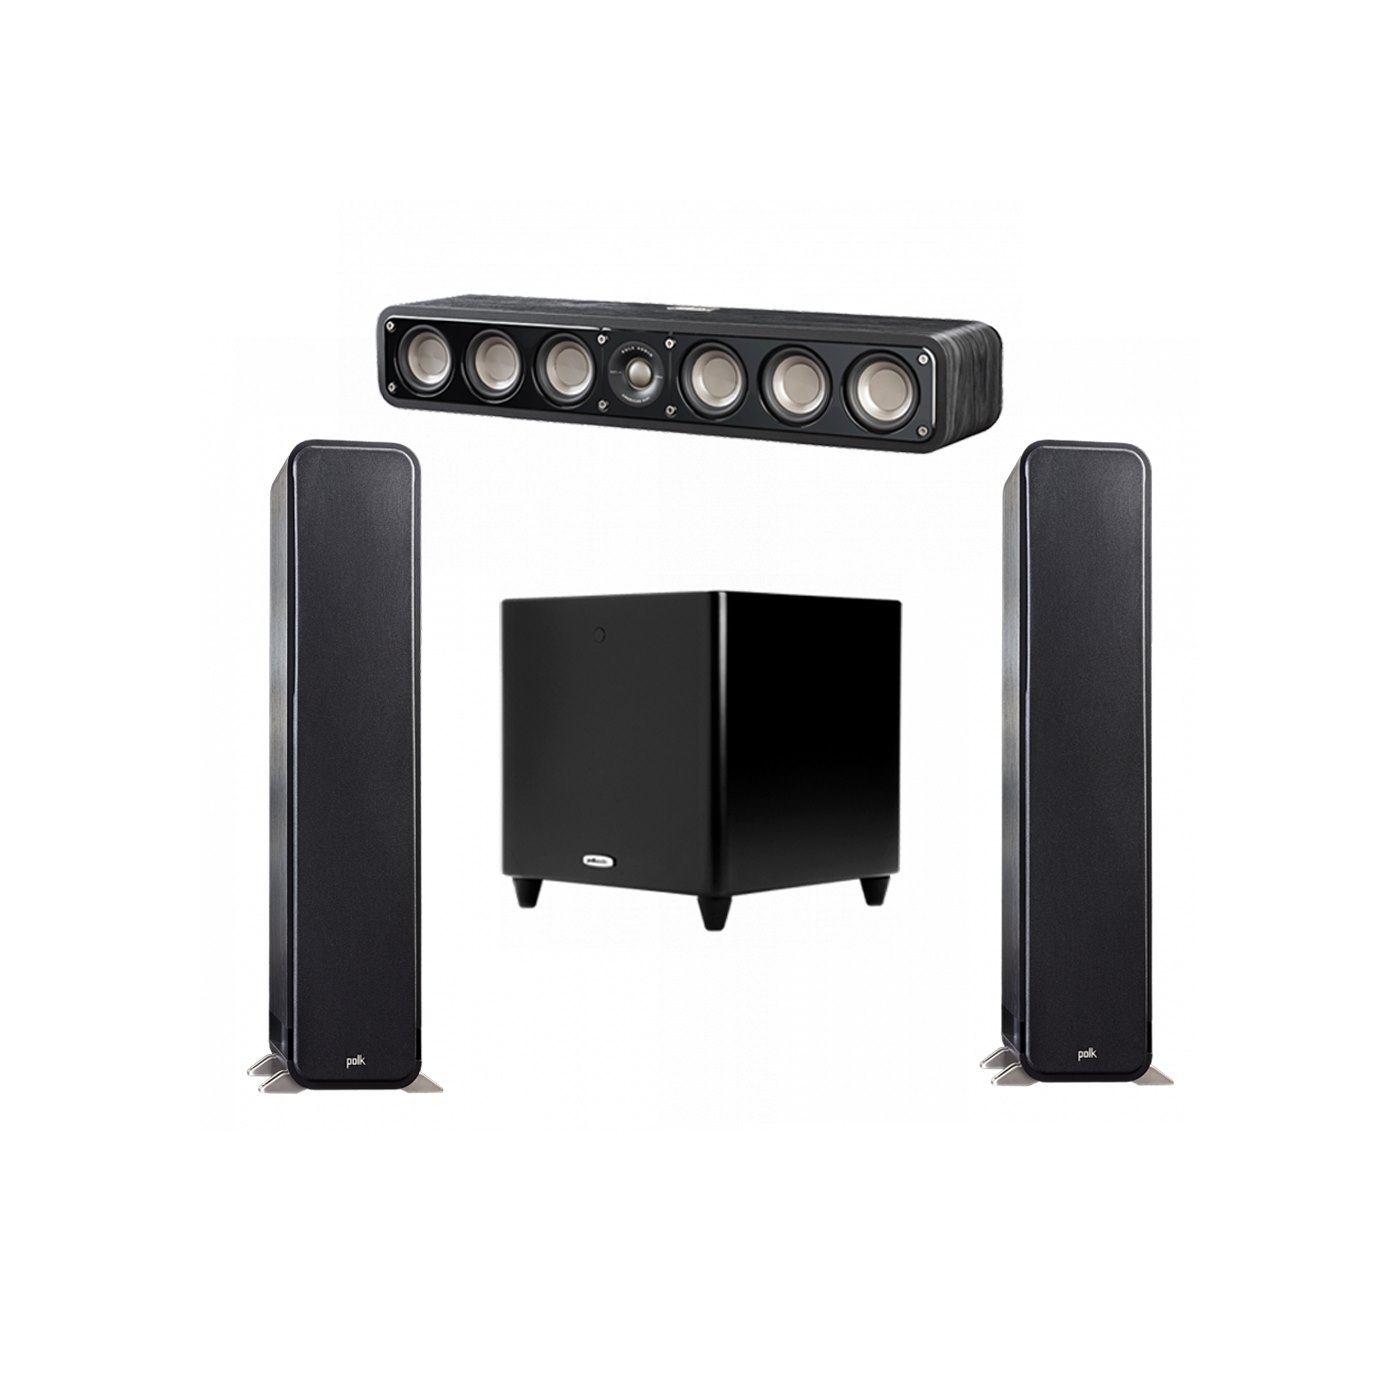 Polk Audio Signature 3.1 System with 2 S55 Tower Speaker, 1 Polk S35 Center Speaker, 1 Polk DSW PRO 550 wi Subwoofer